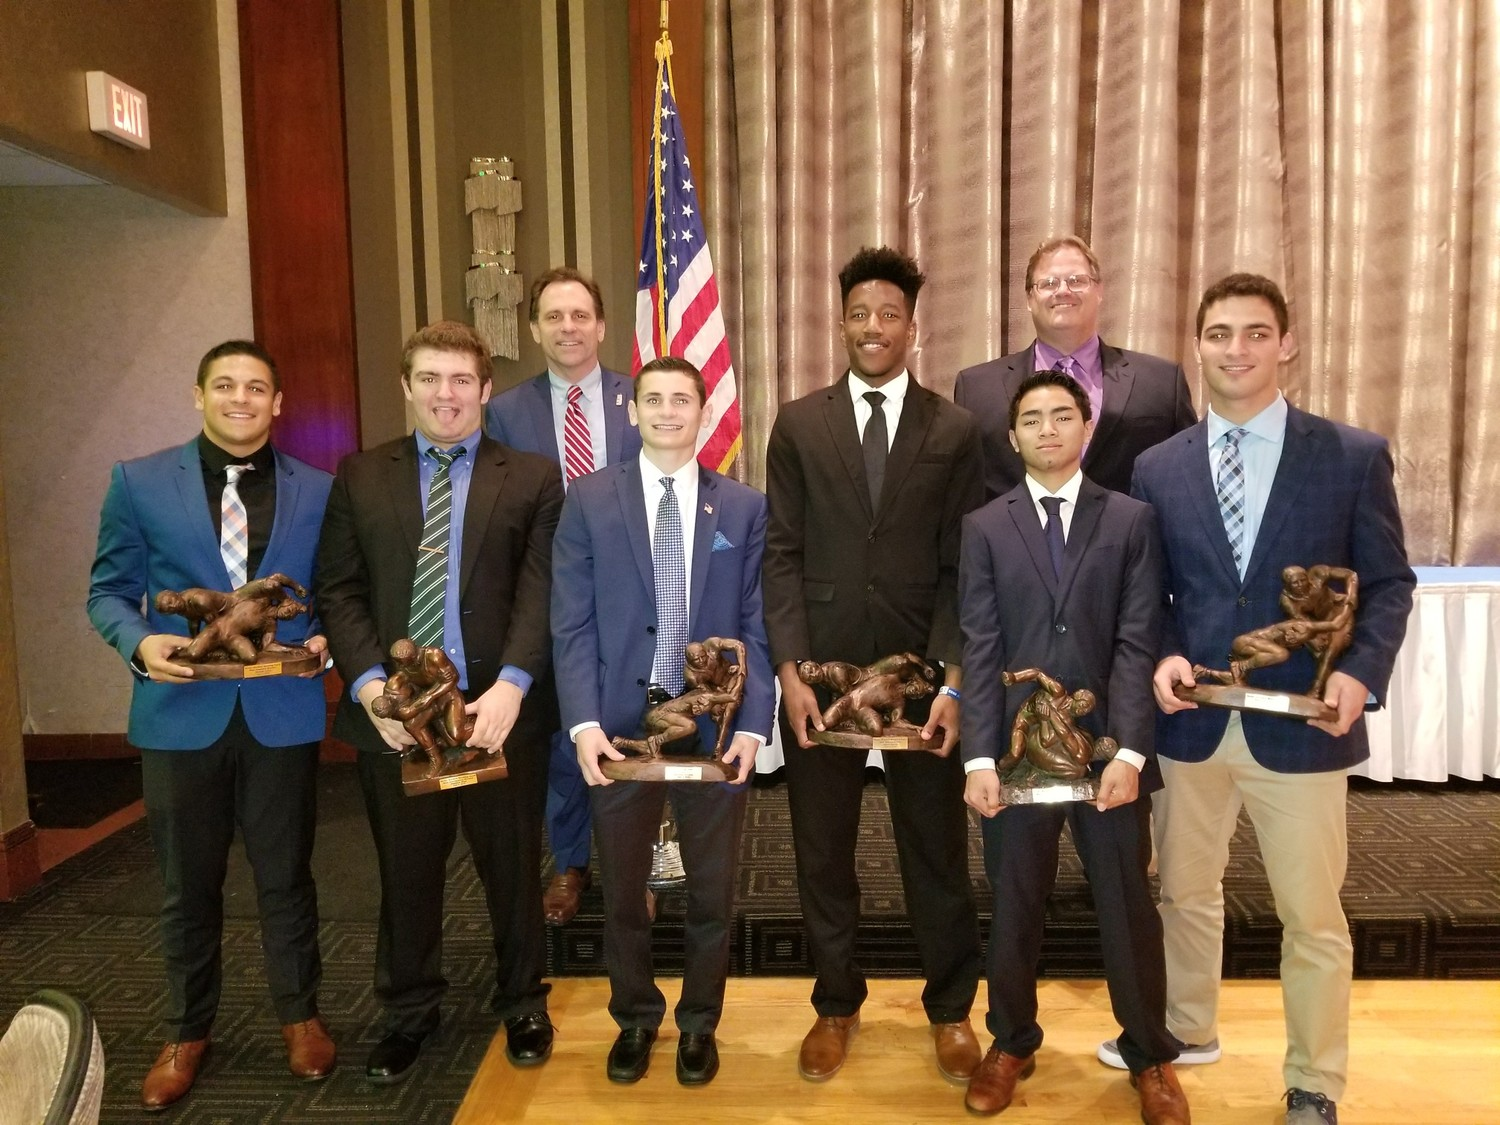 Lynbrook wrestlers Tom Urena, left, Matt Renz, Matt Ferrante, Justin Harvin, Joe Becker and Garrett Handel were honored at the annual Becker Brothers awards ceremony. Above, the wrestlers with Hilary Becker, head of the Lynbrook Titans Wresting program, back left, and varsity coach Richie Renz.